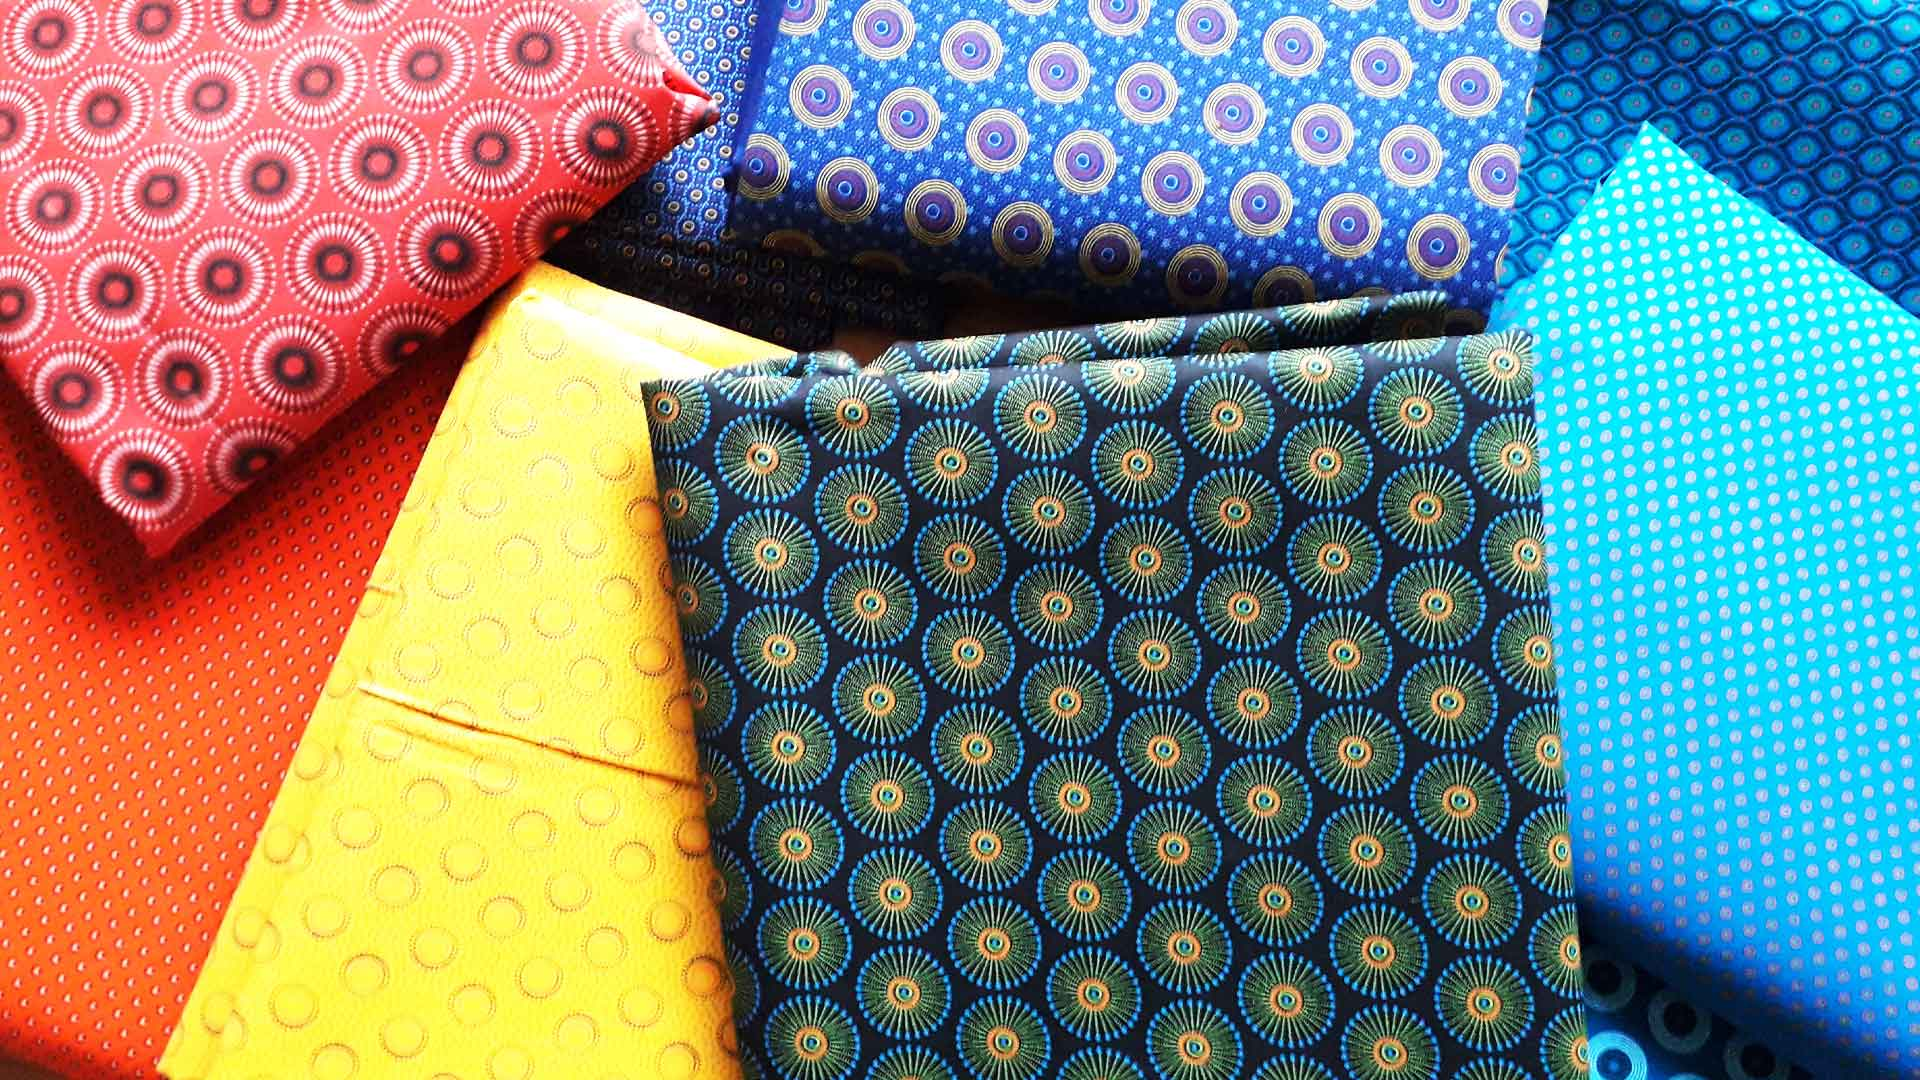 Three Cats – Home of the Original Shweshwe Textiles